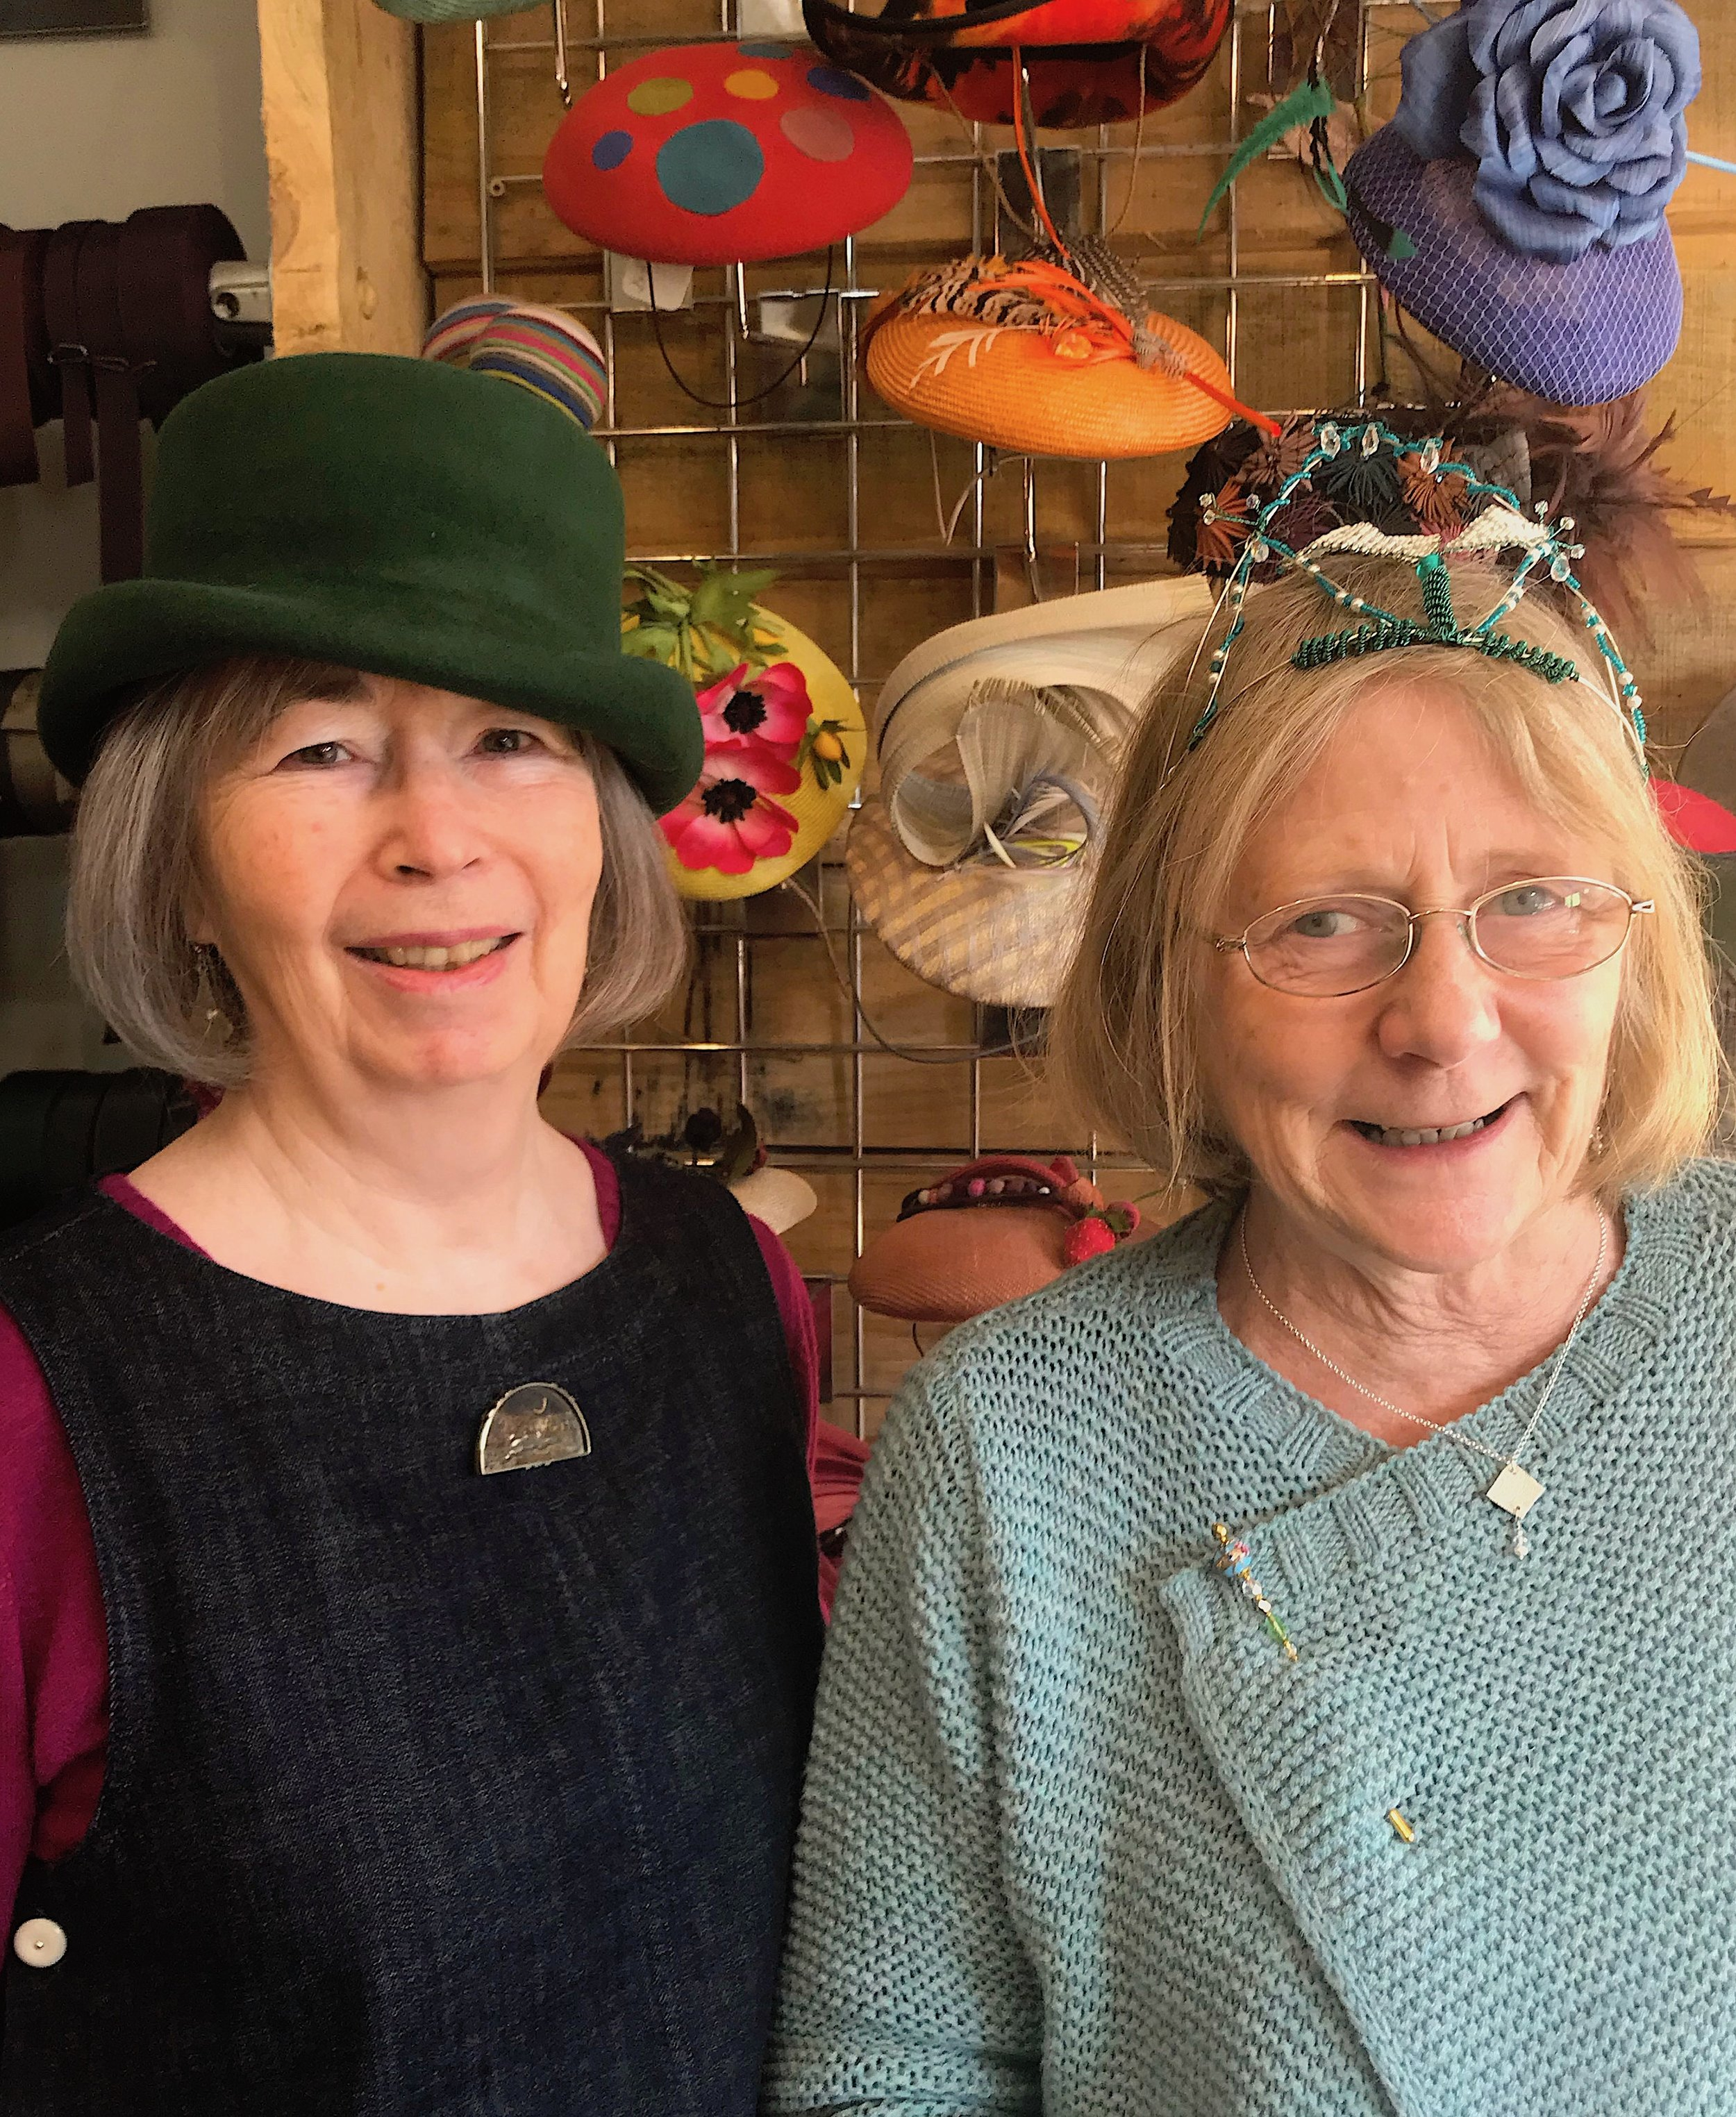 Lynn modelling one of her felt hats, and Verna wearing one of her beaded creations